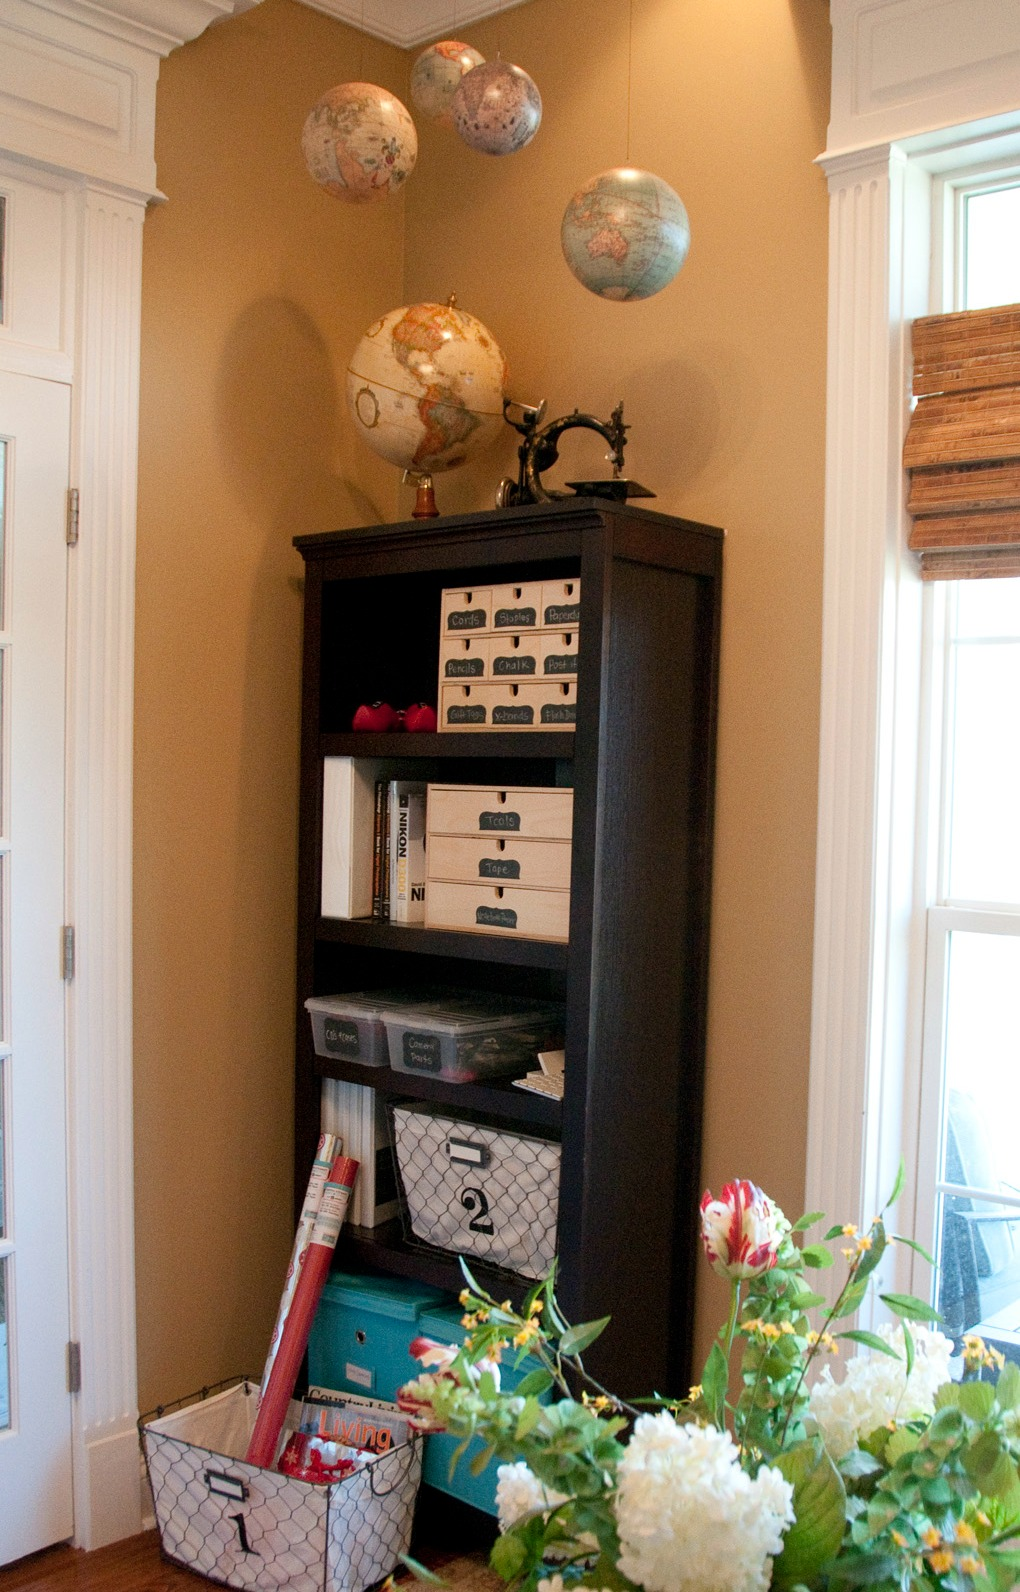 6 Fun and Stylish Home Office Organization Ideas and Tips